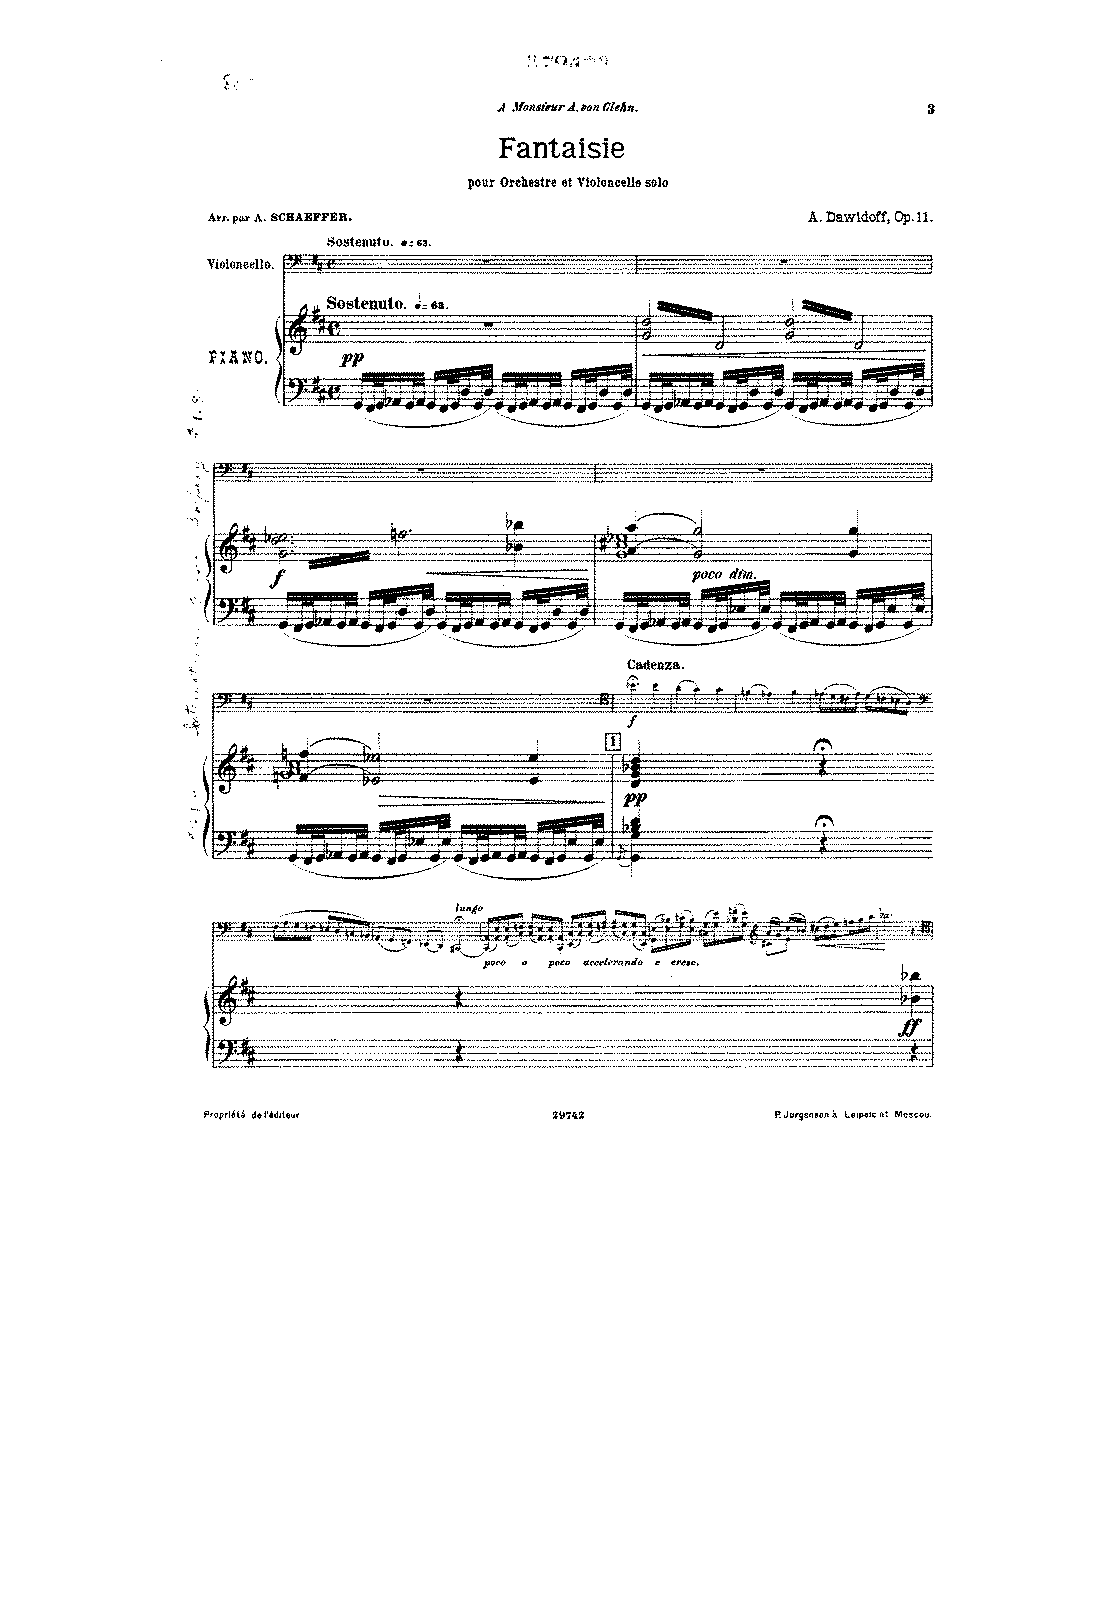 PMLP161020-Davidoff - Fantasie for Cello and Orchestra Op11 score.pdf